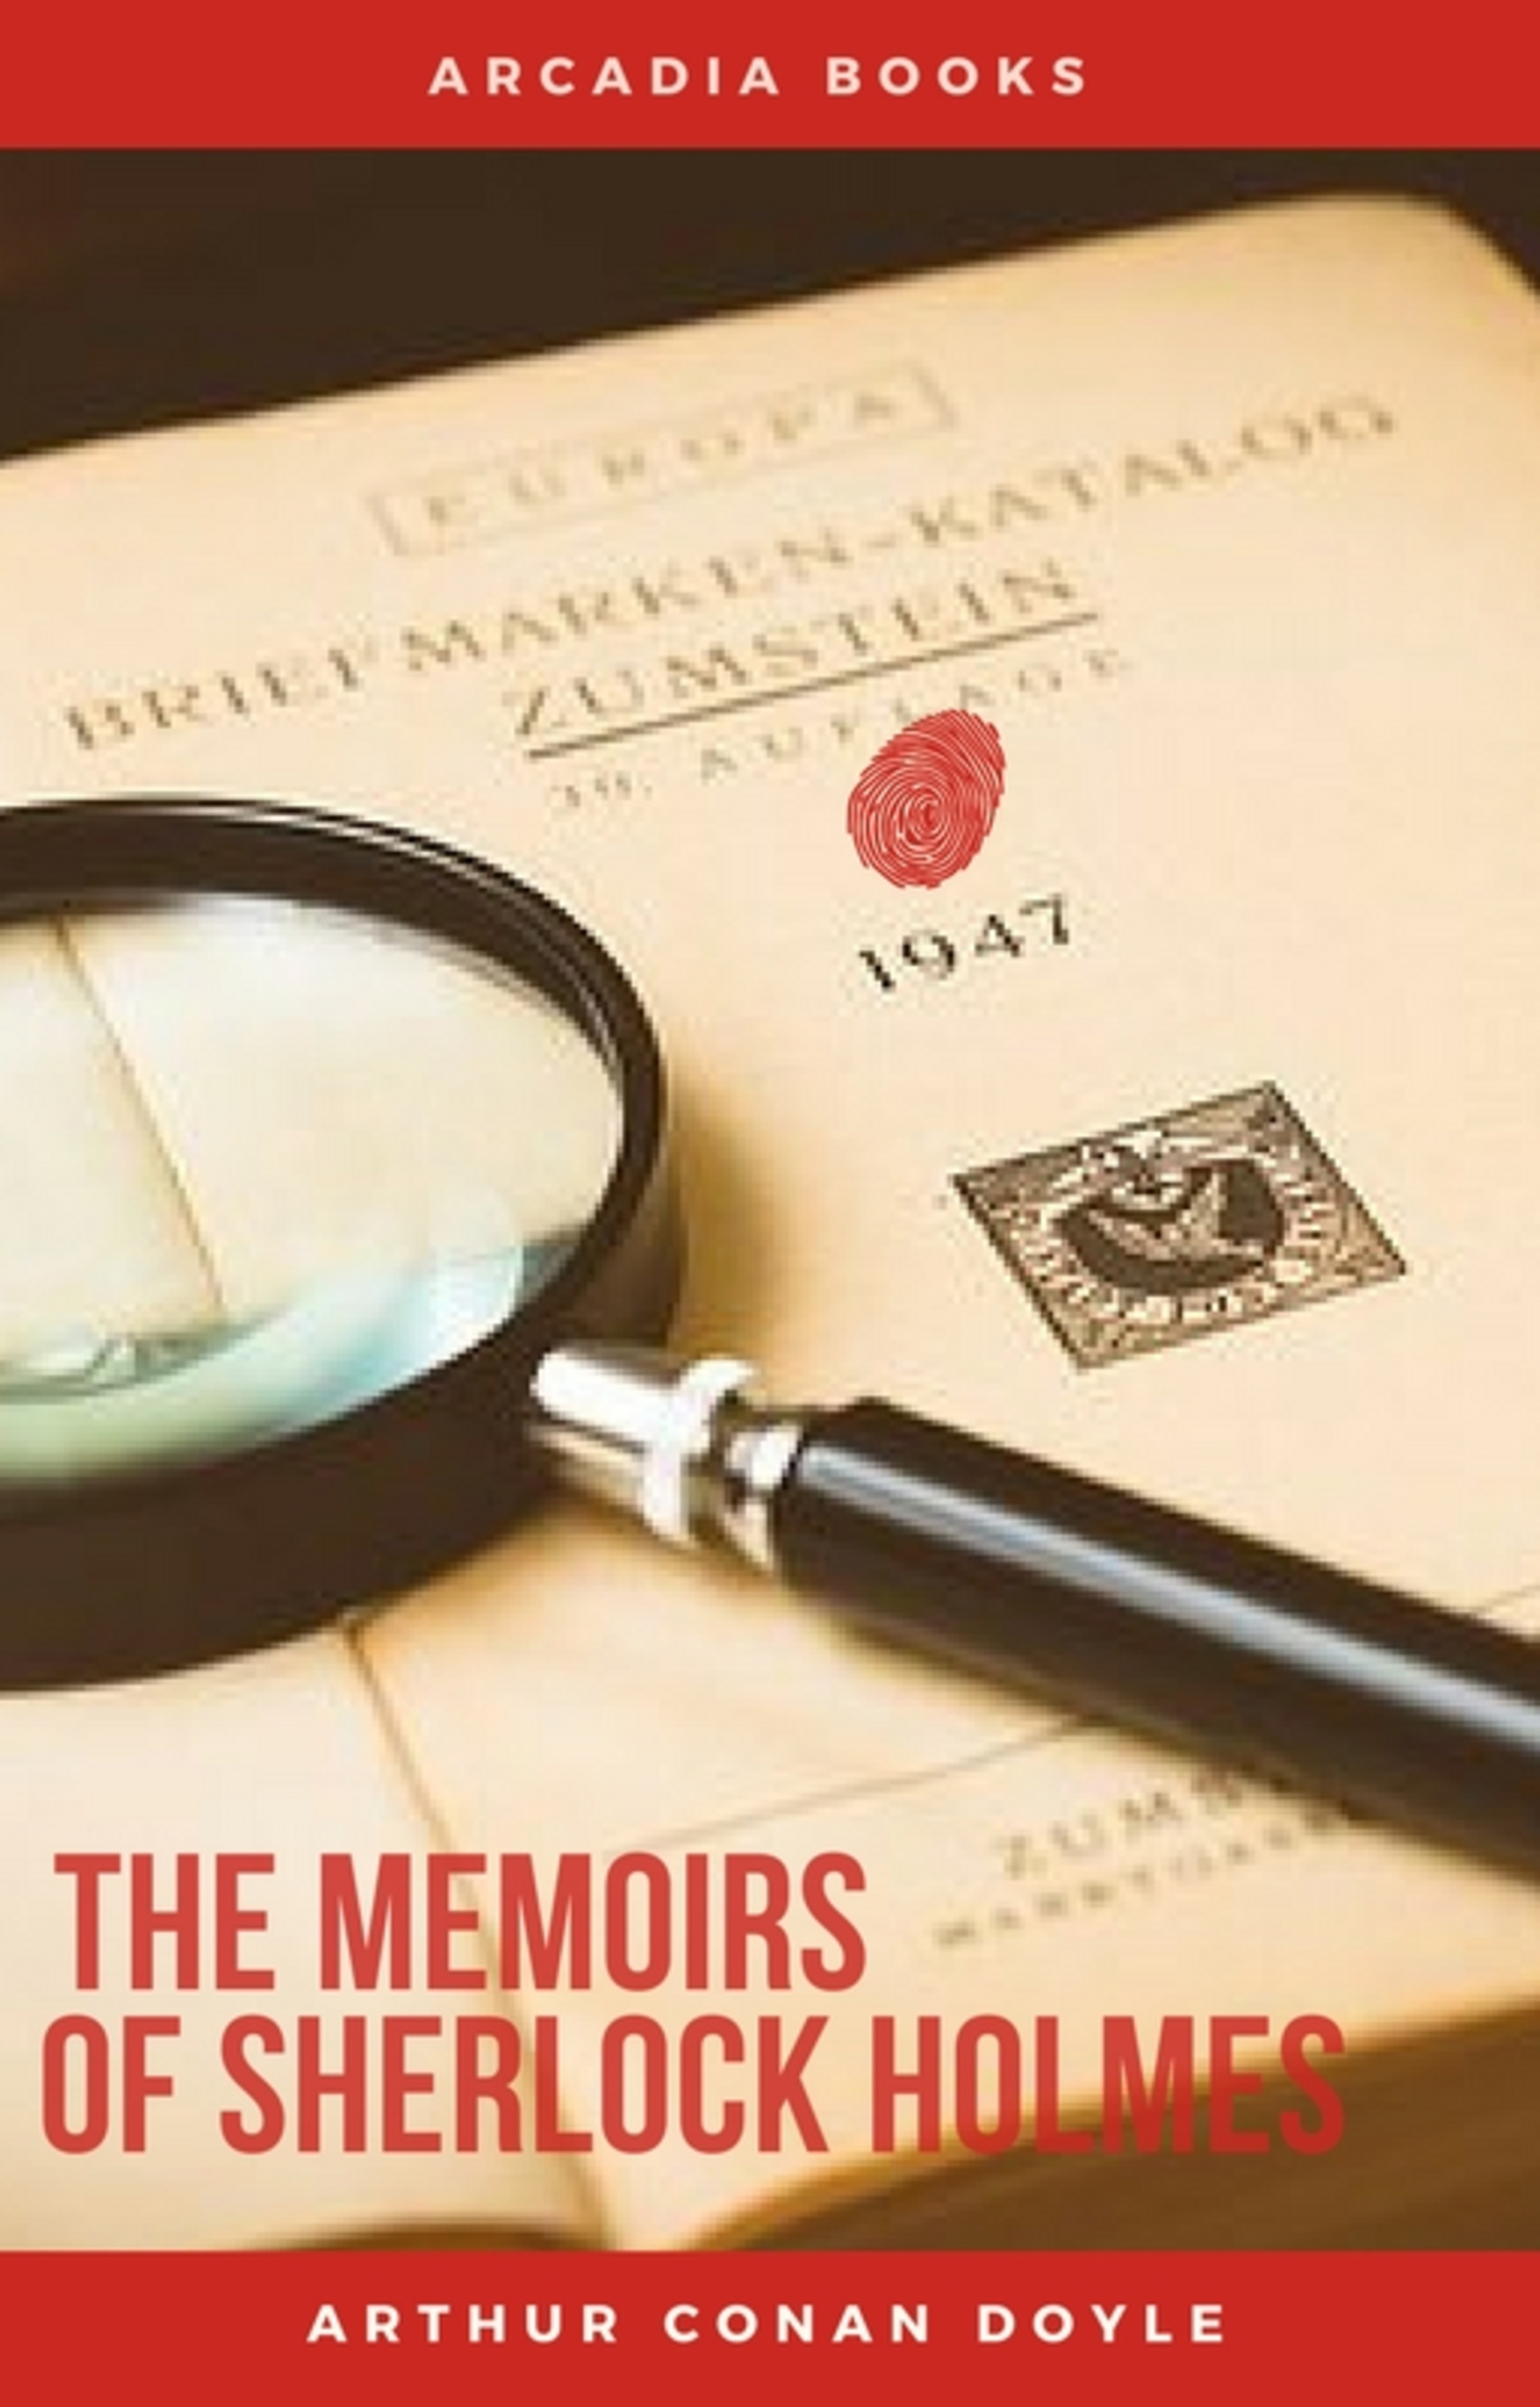 Артур Конан Дойл Arthur Conan Doyle: The Memoirs of Sherlock Holmes (The Sherlock Holmes novels and stories #4) конан дойл а рассказы о шерлоке холмсе пестрая лента голубой карбункул the stories about sherlock holmes the speckled band the blue carbuncle уровень 2